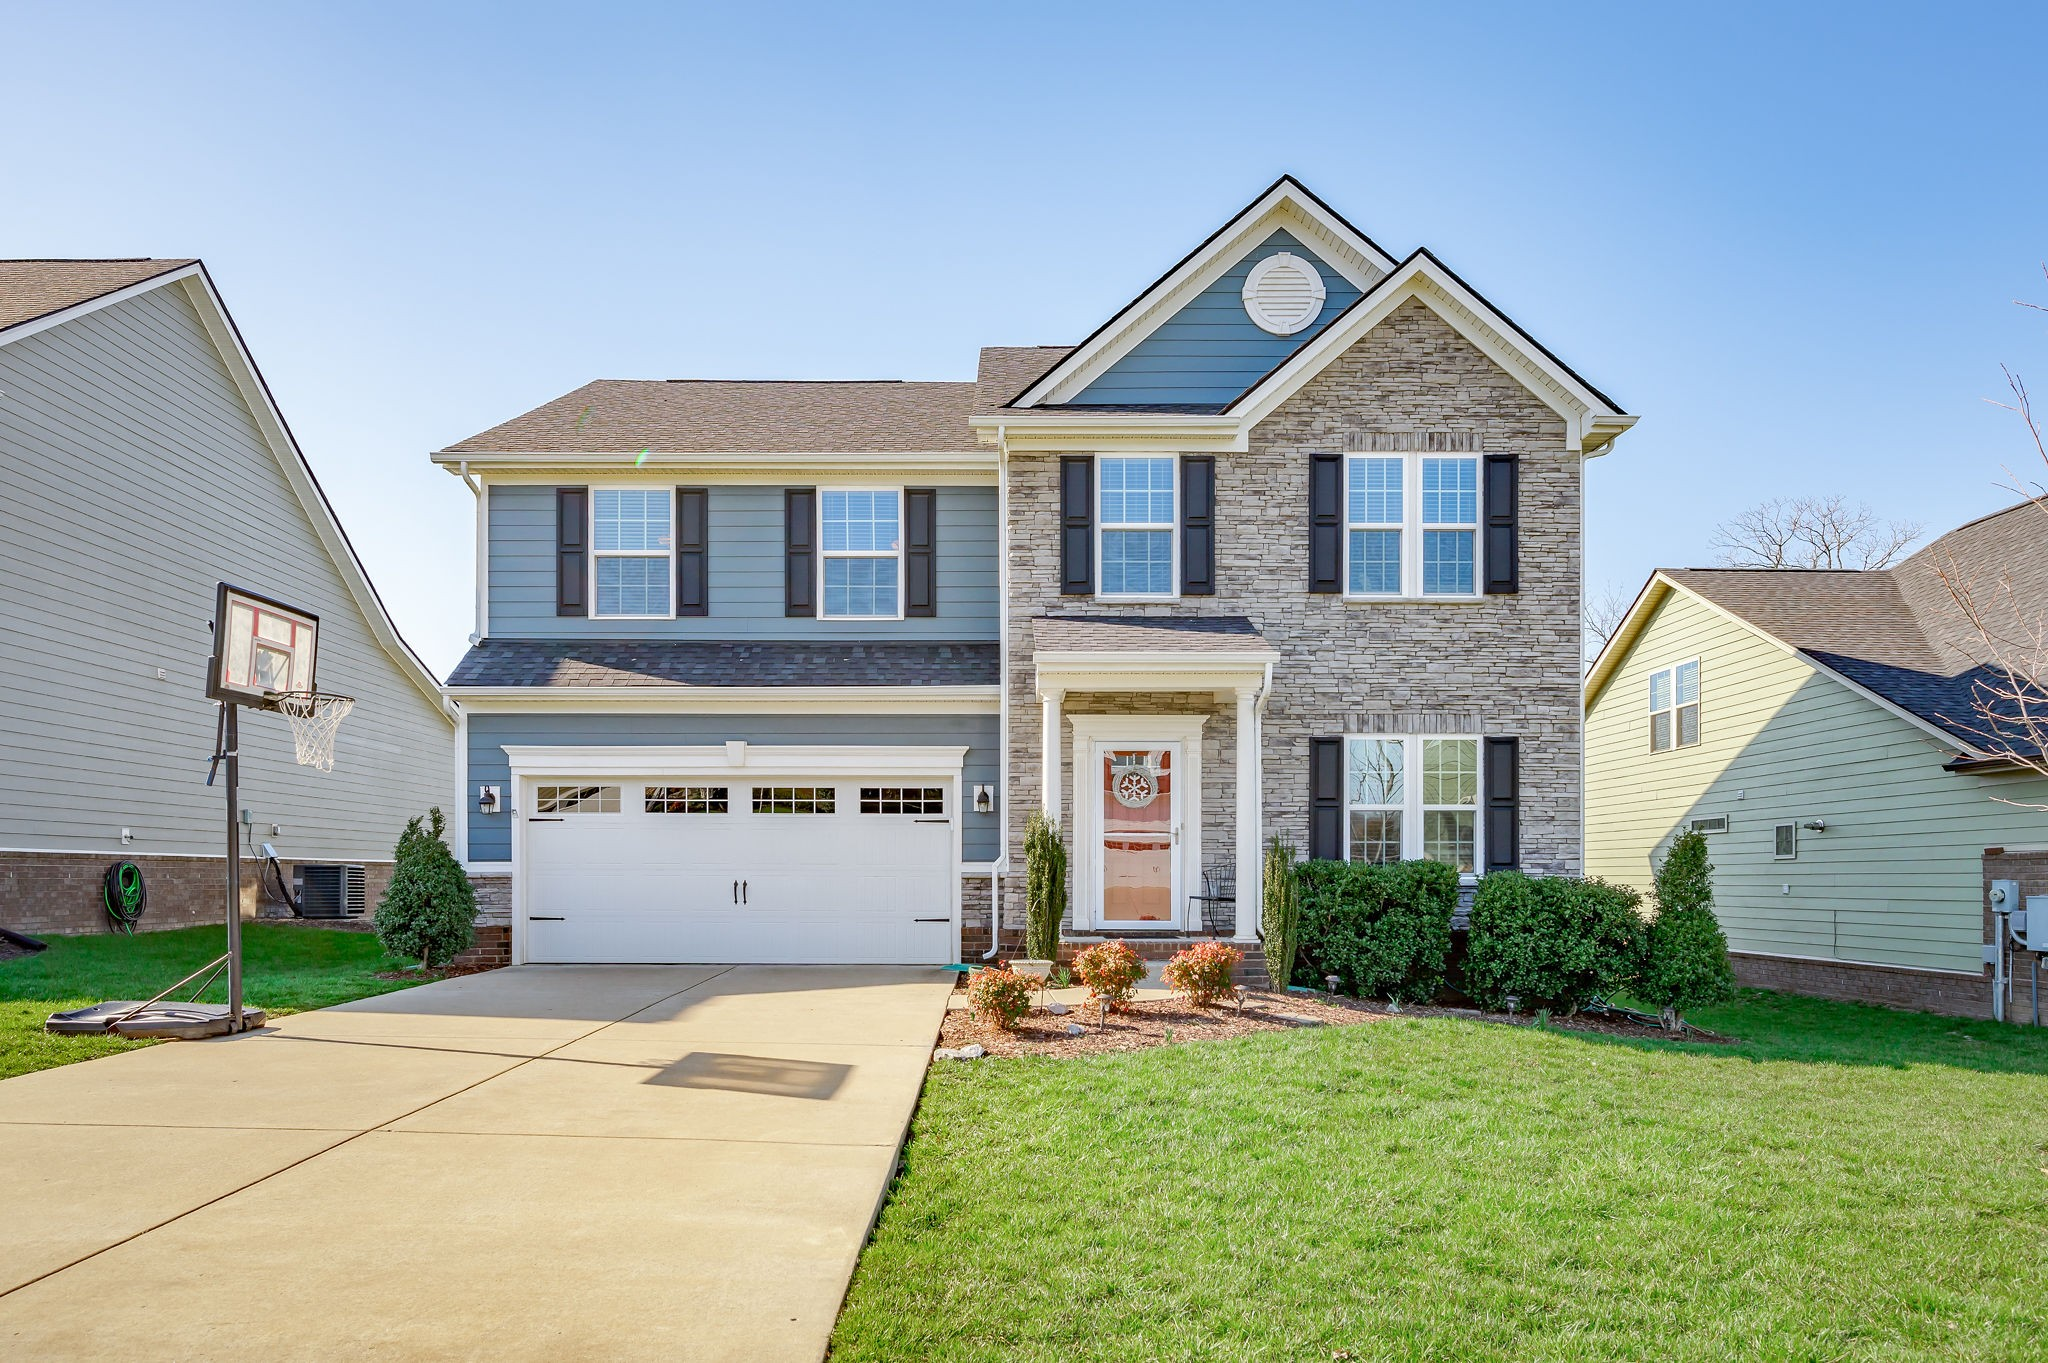 1991 Allerton Way, Spring Hill in Williamson County, T County, TN 37174 Home for Sale